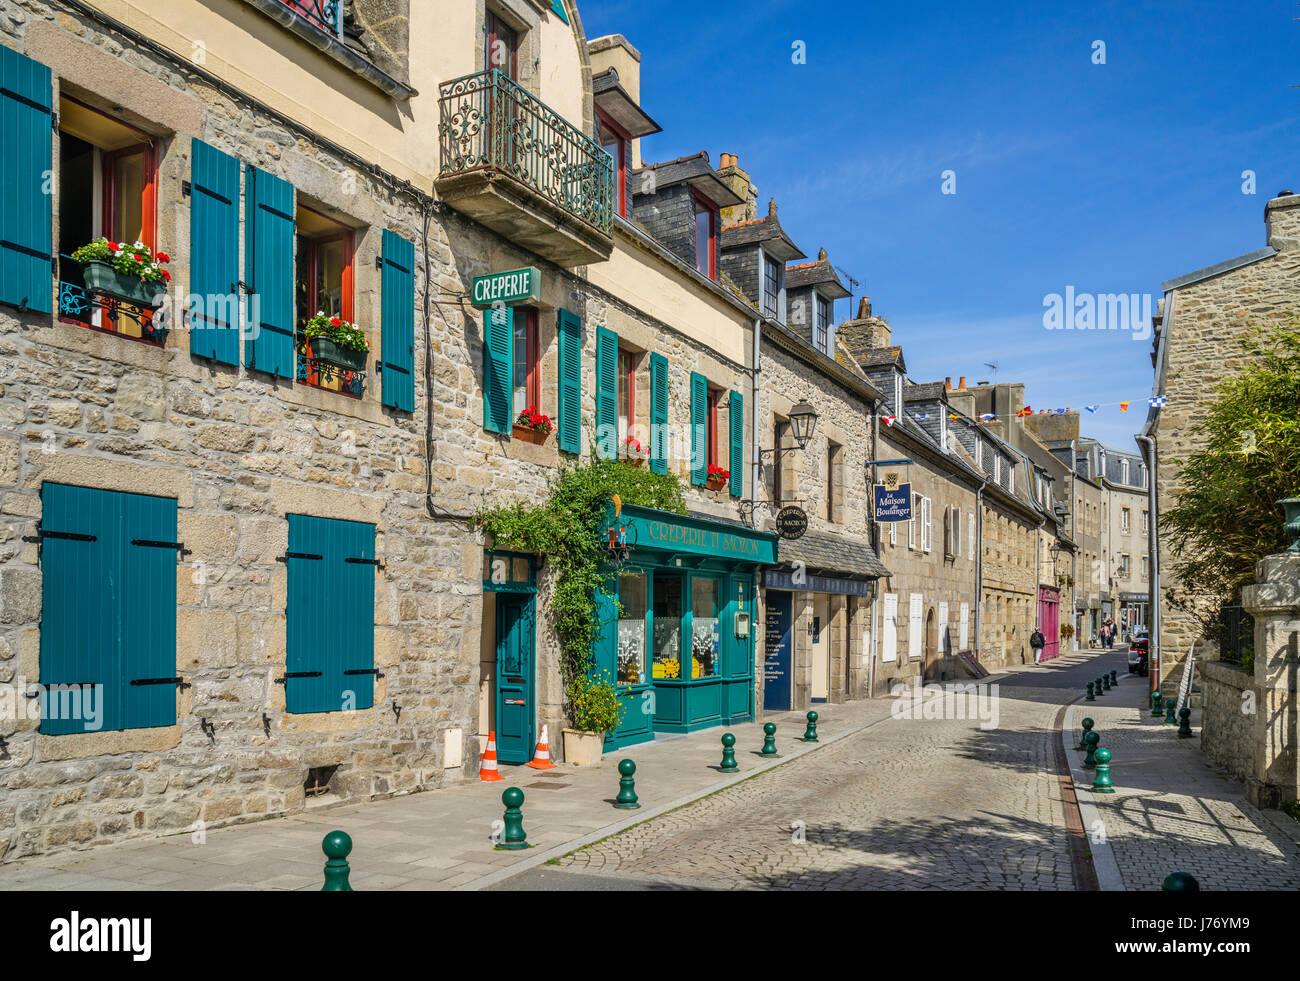 France, Brittany, Finistére department, Roscoff, the picturesque architecture of its granite houses has earned Roscoff Stock Photo